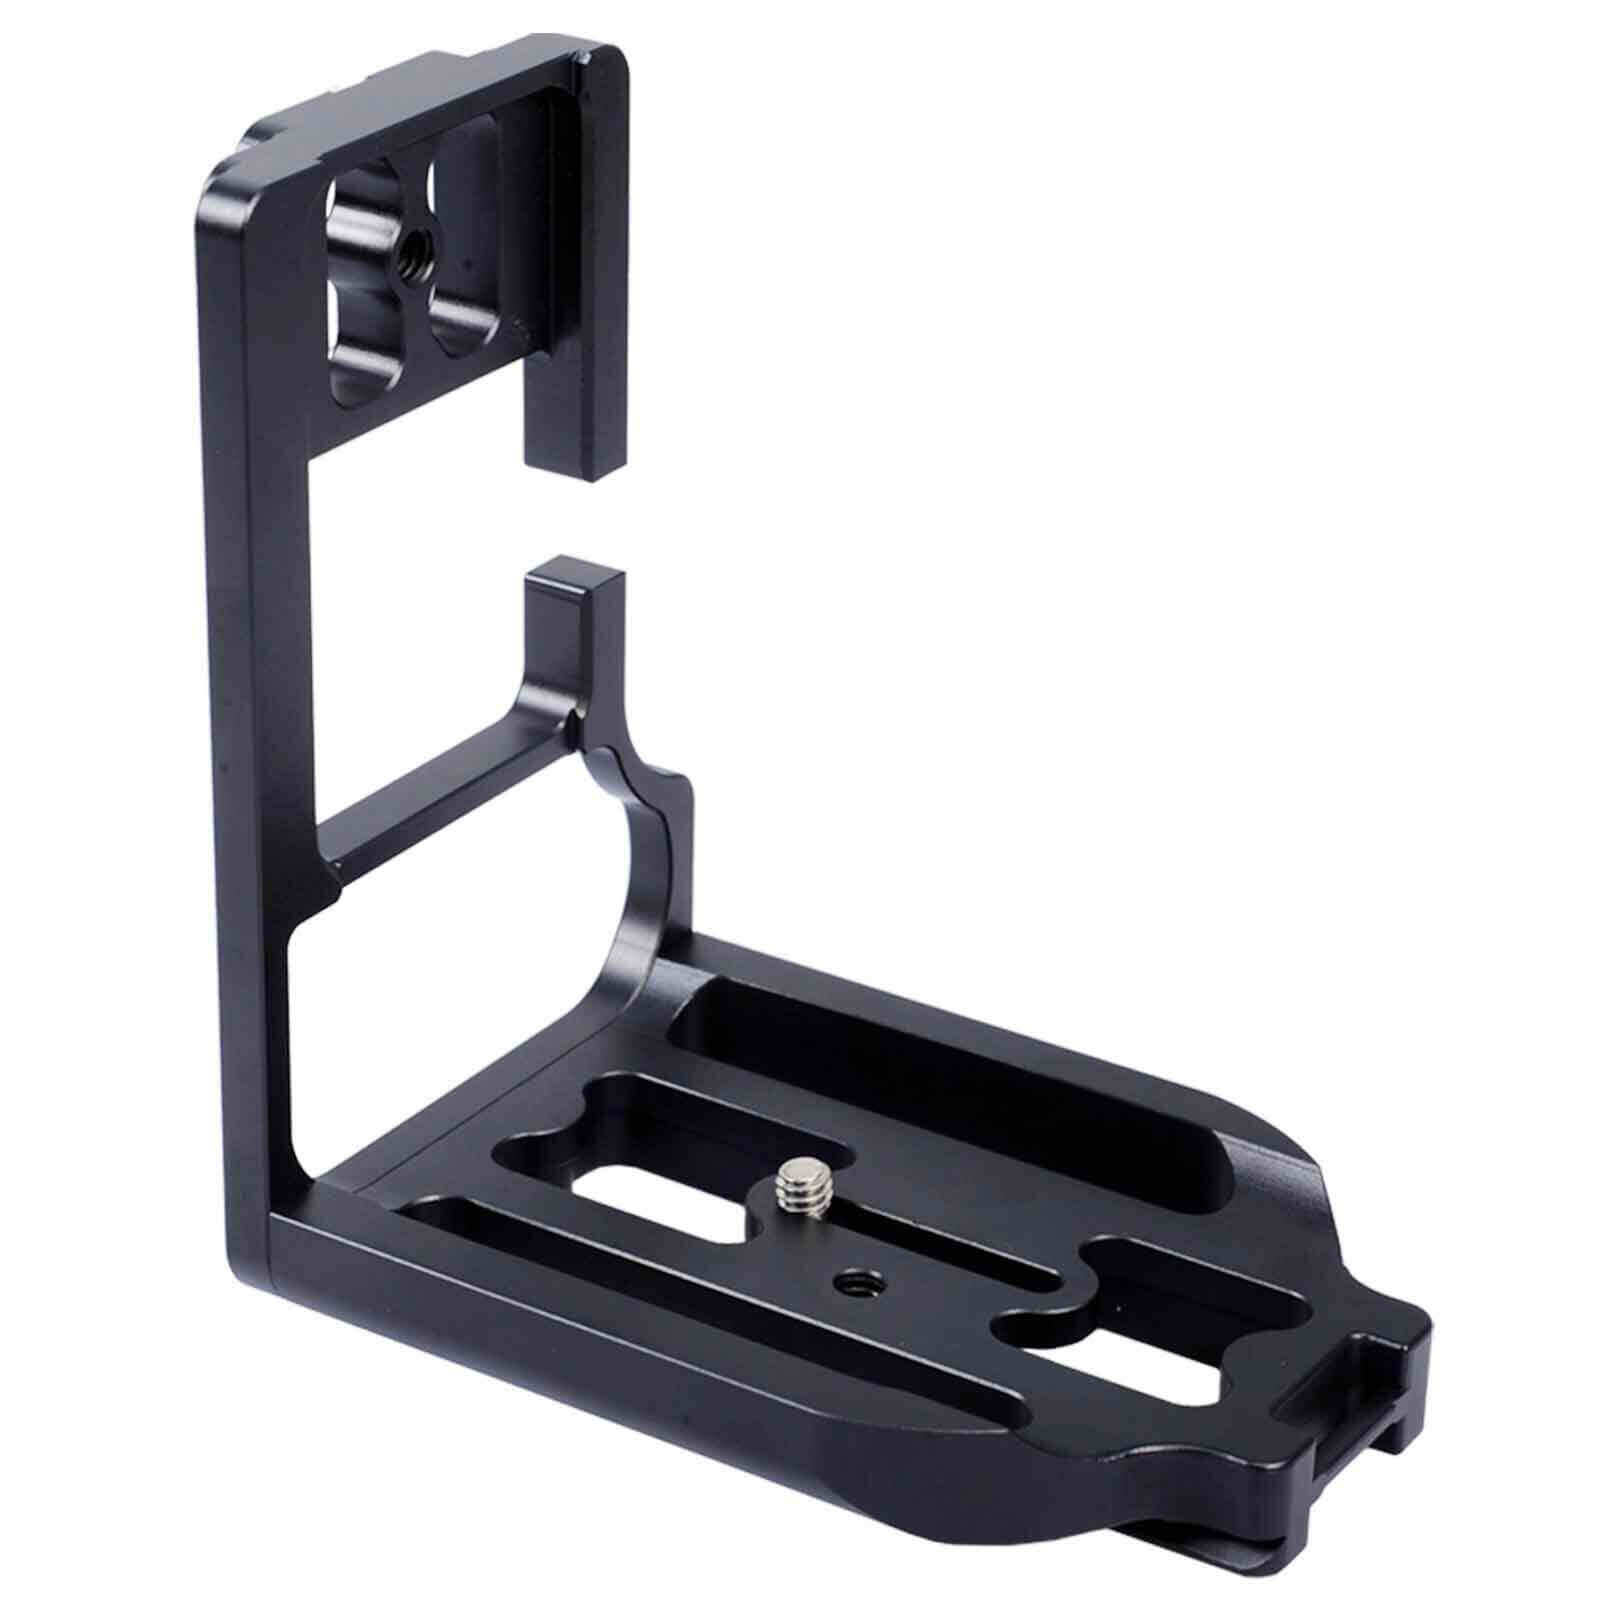 Separable Quick Release Plate Camera Bracket Grip for Ball Head Canon EOS 1DX